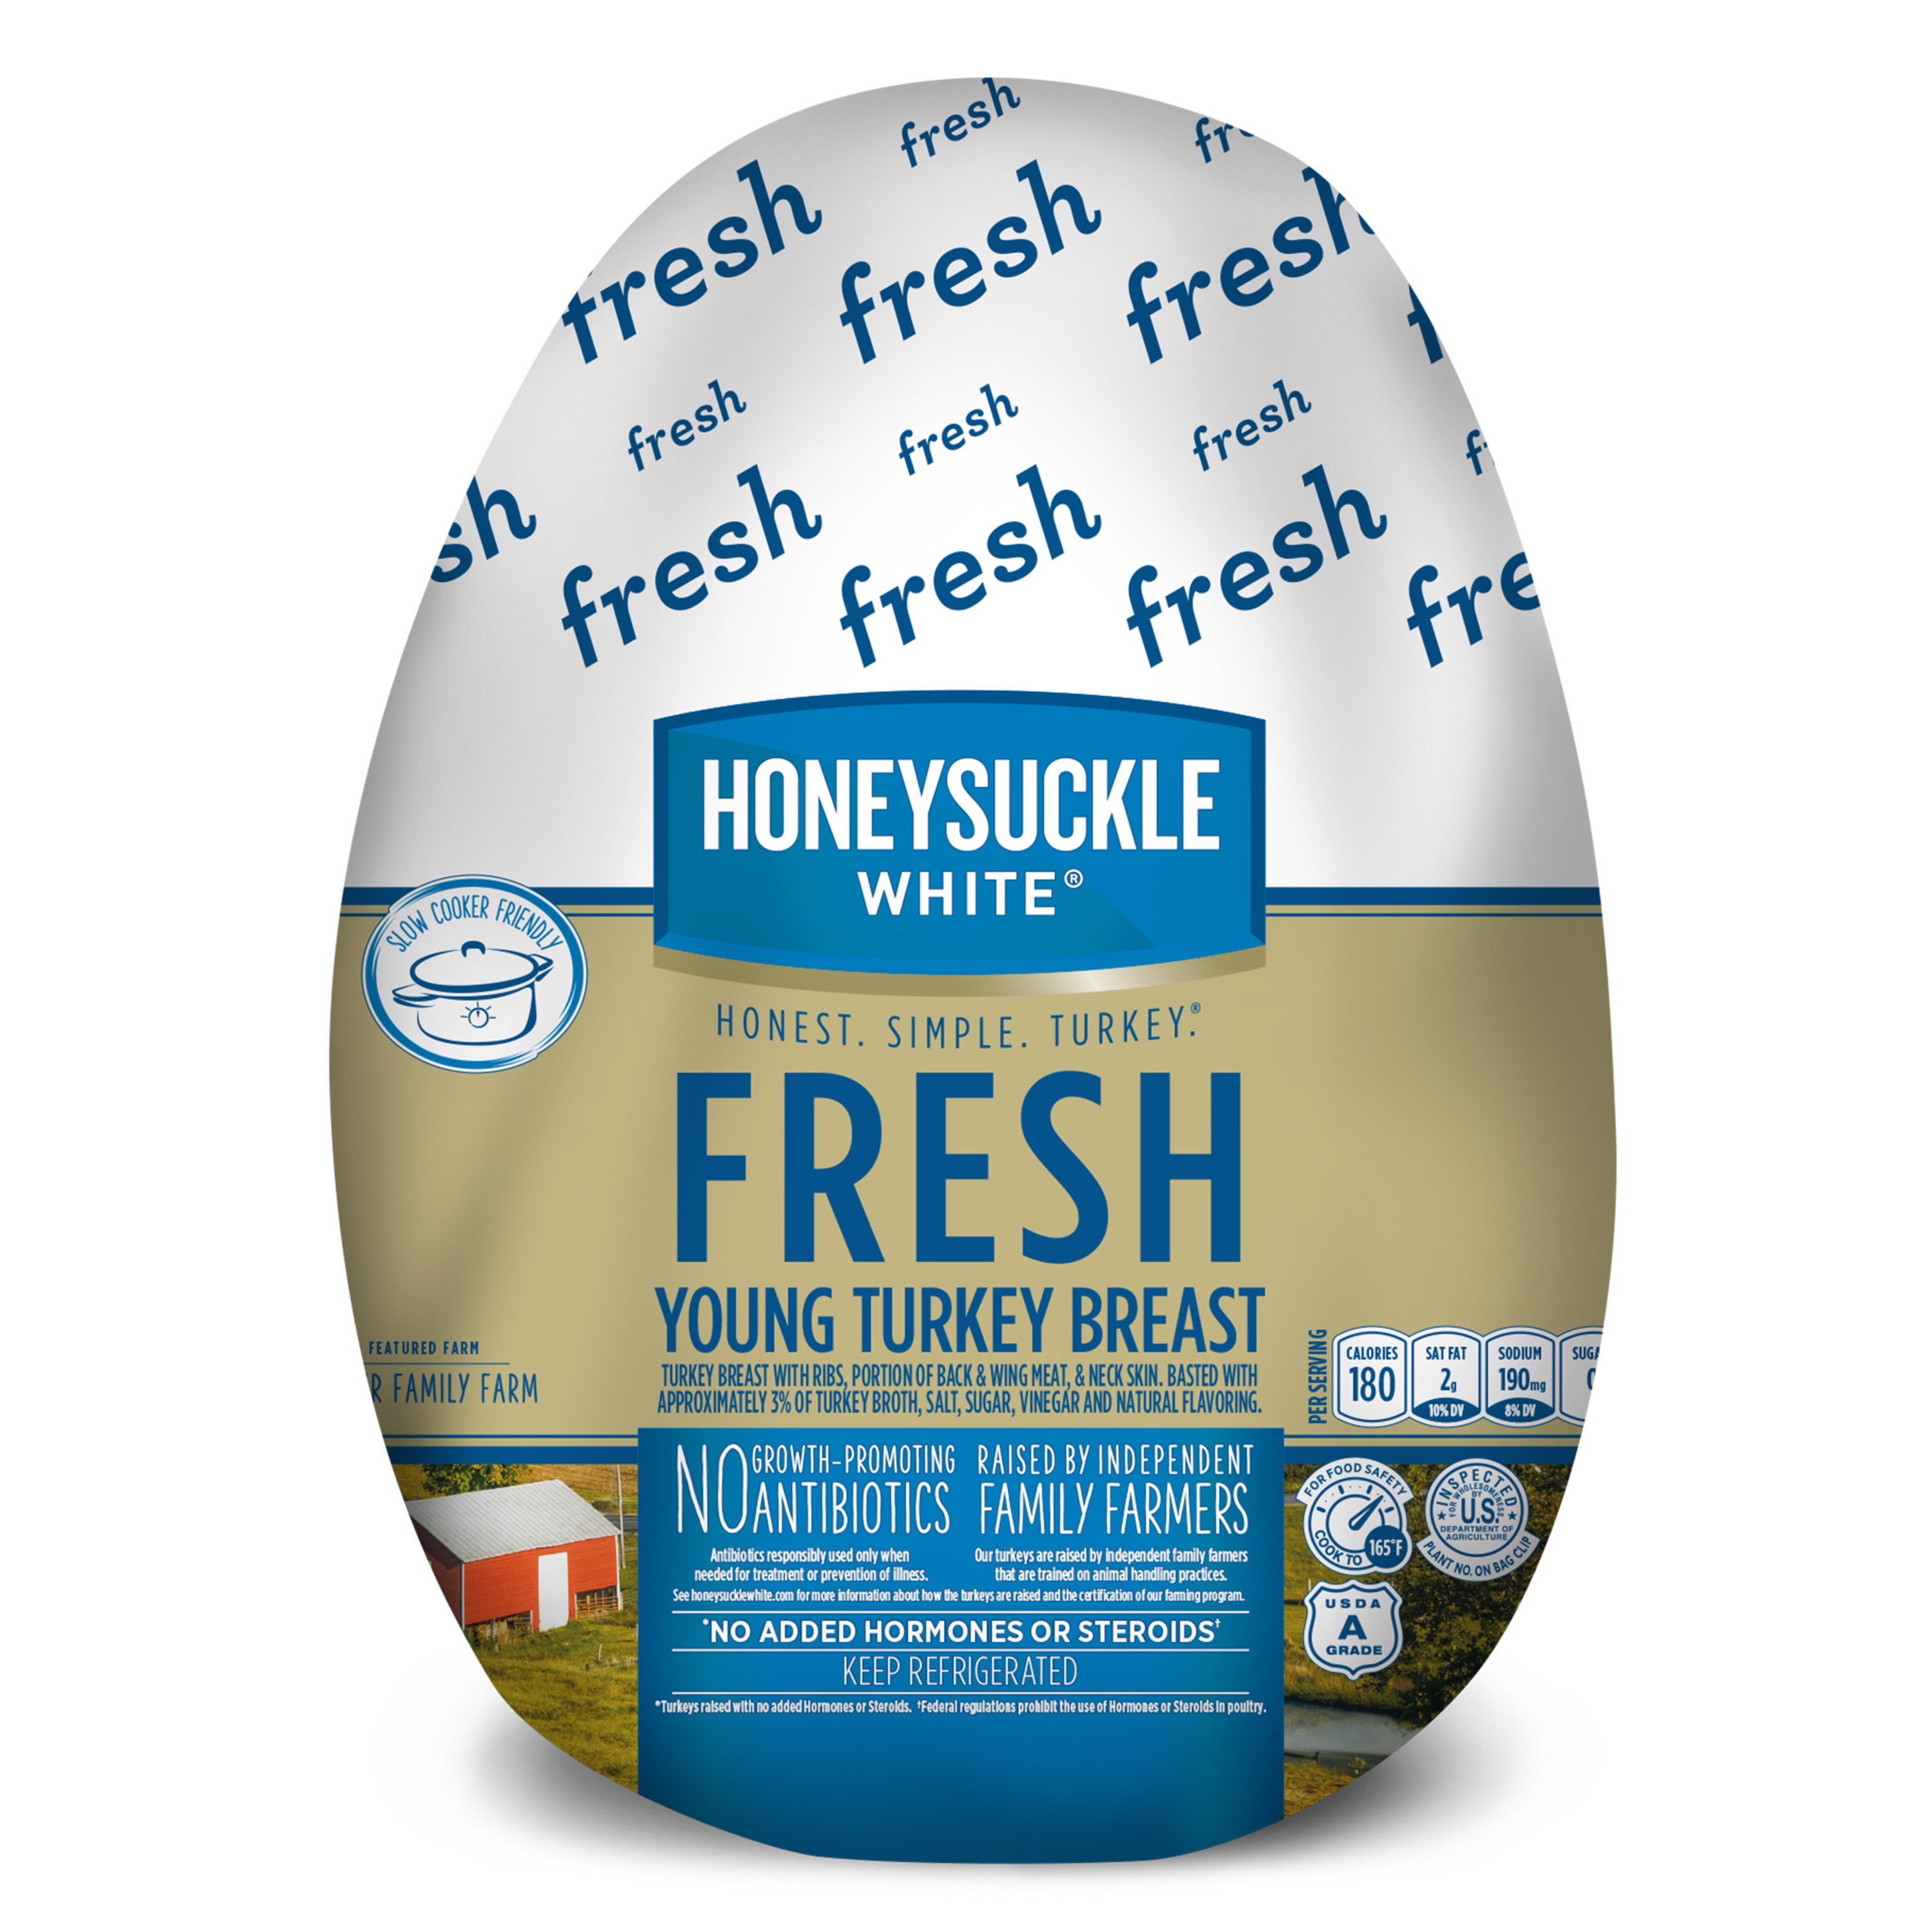 Honeysuckle White Fresh Turkey Breast, Bone-In 2.5-10.0 lb